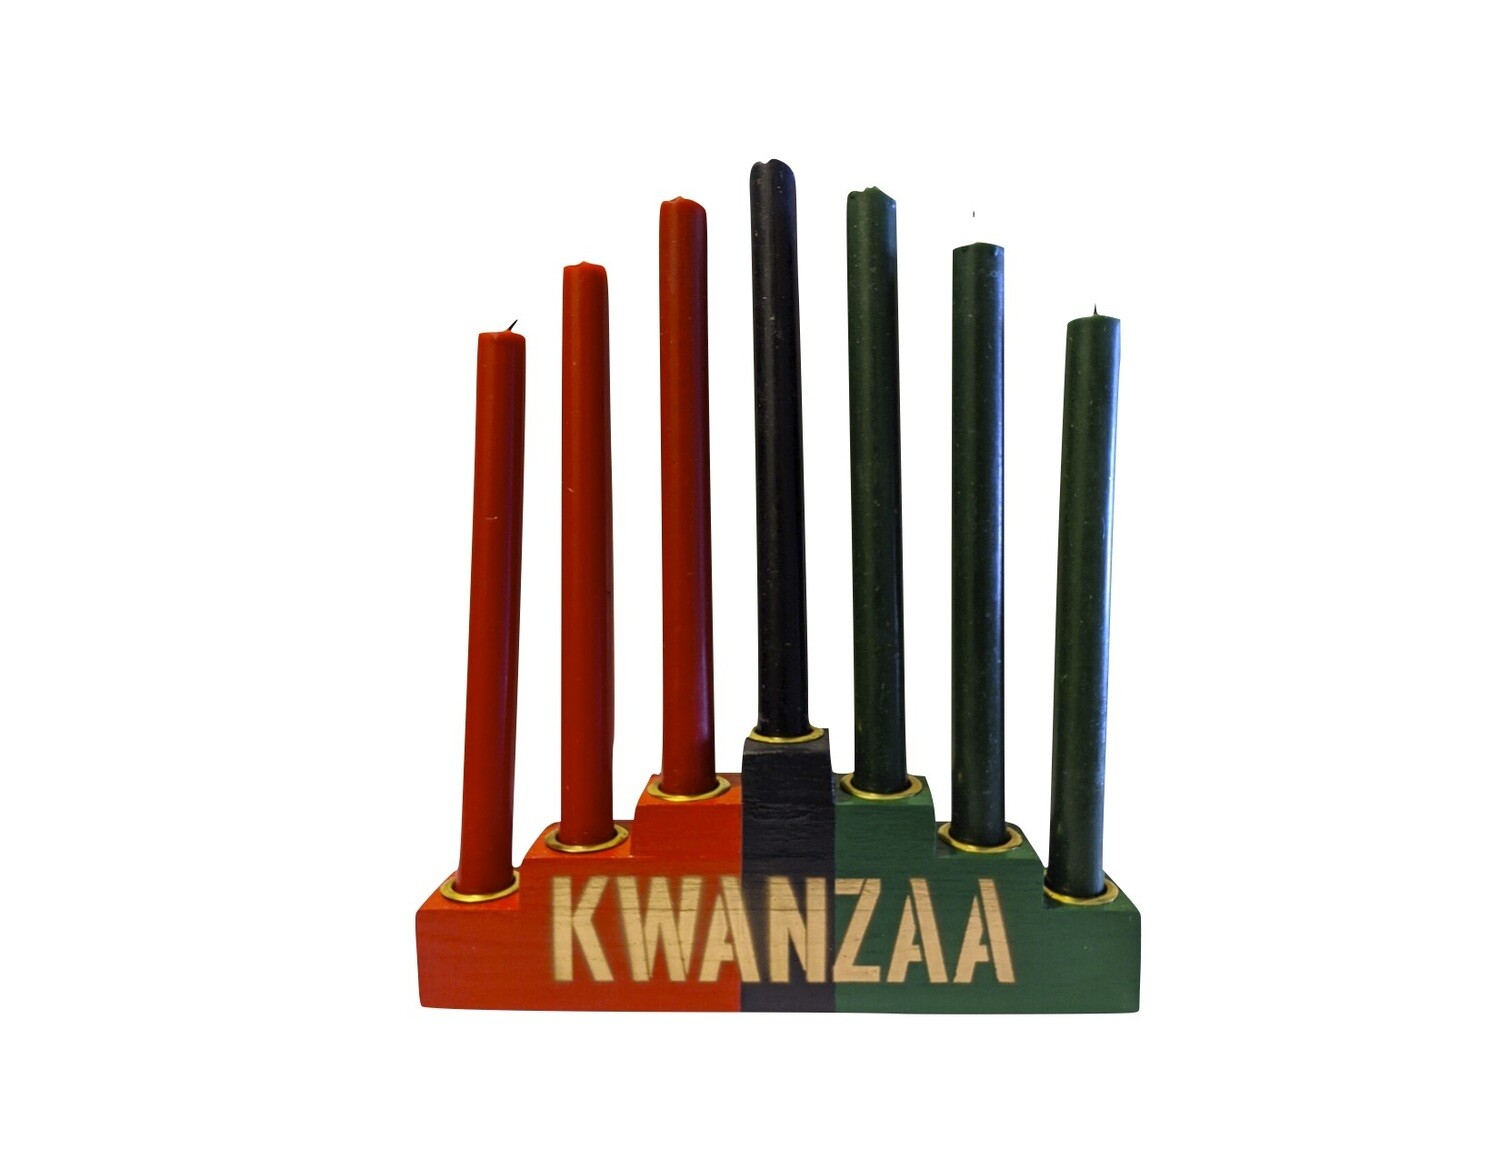 """Kwanzaa"" Kinara Set with Mishumaa Saba Candles -Colors of Africa Wooden Kinara with Gold Finish"